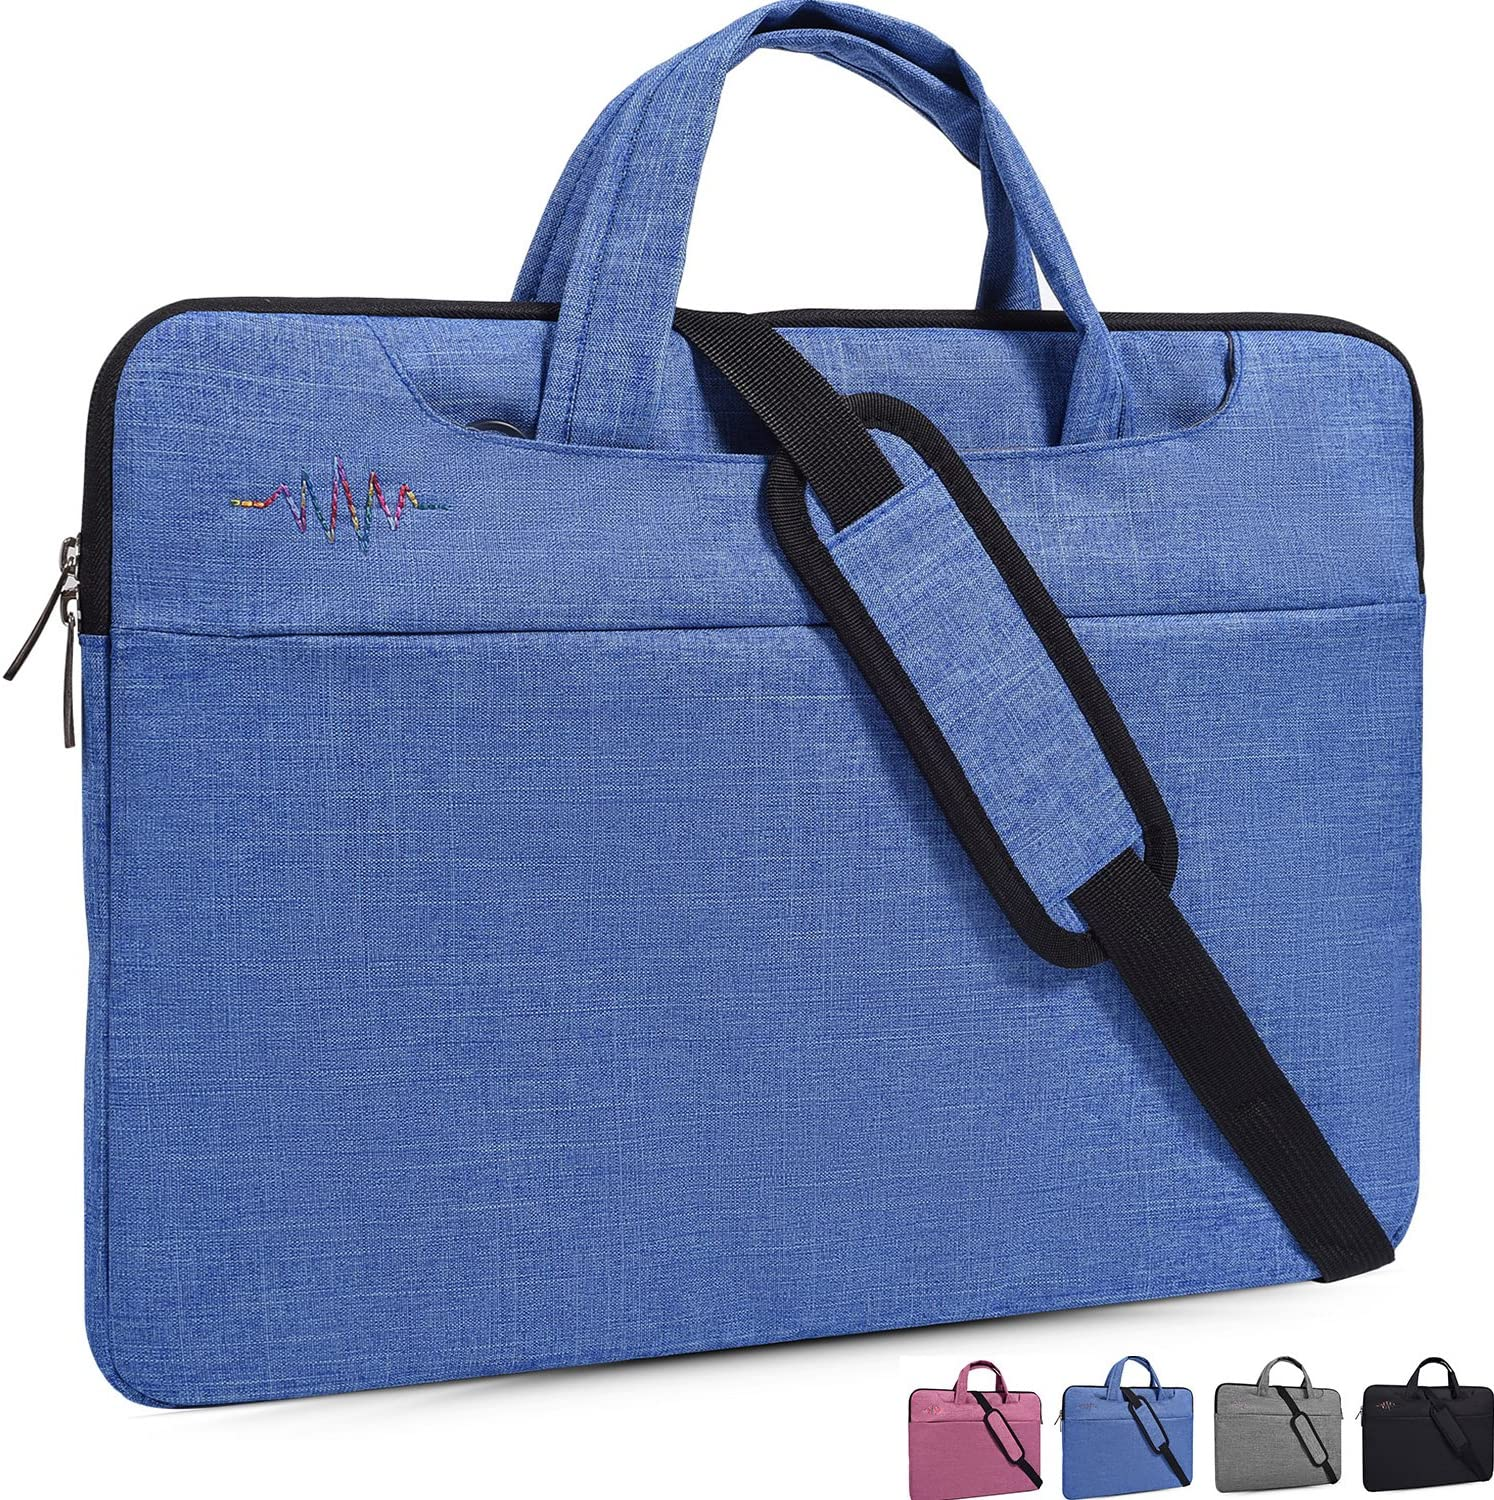 13-13.3 Inch Laptop Shoulder Bag Brifecase Fit MacBook Pro/Air,Acer Chromebook R 13/Acer R13 13.3